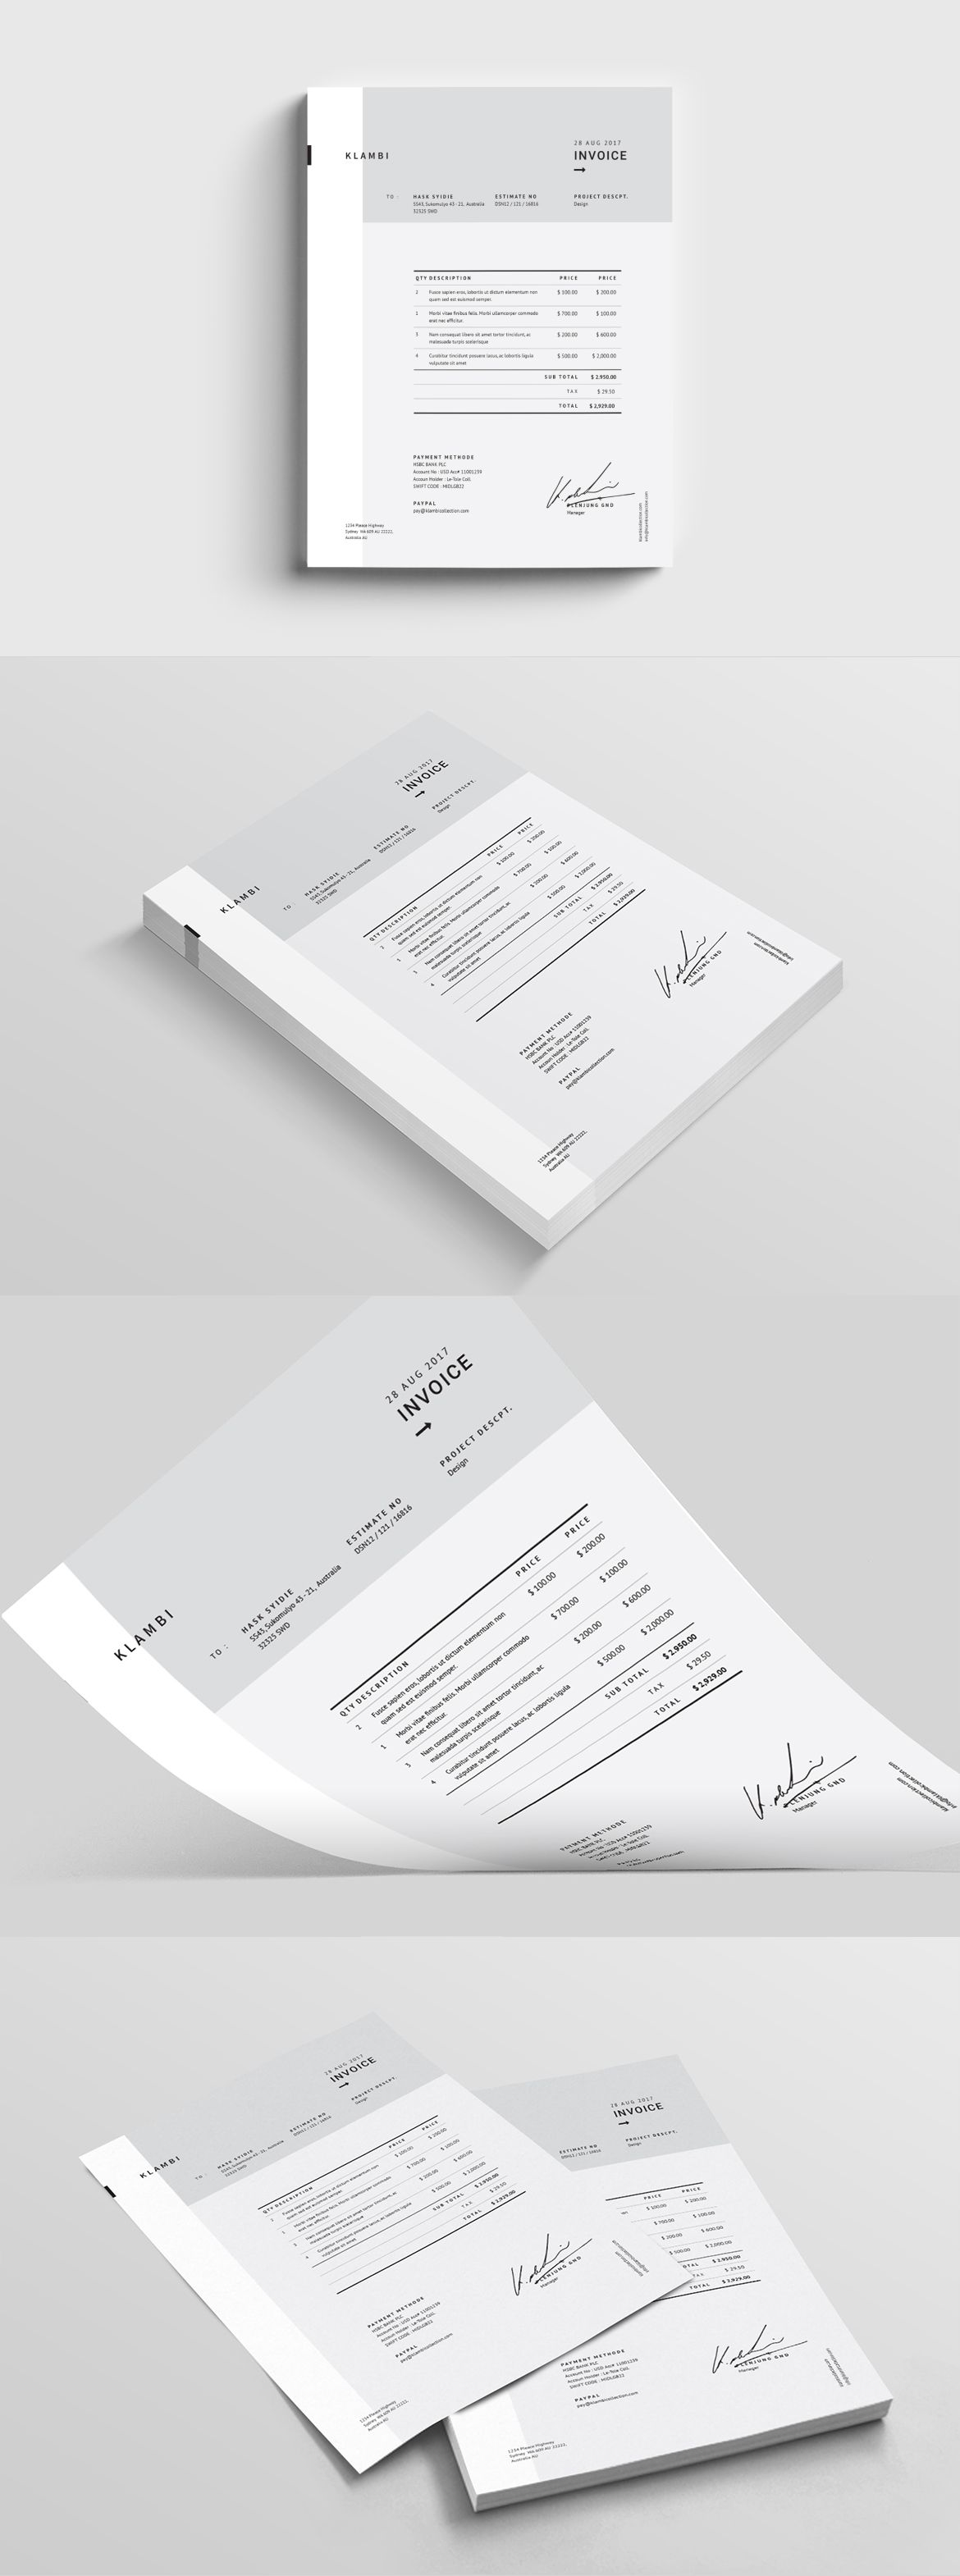 Fashion Invoice Template InDesign INDD | ••• BILL DESIGN ...